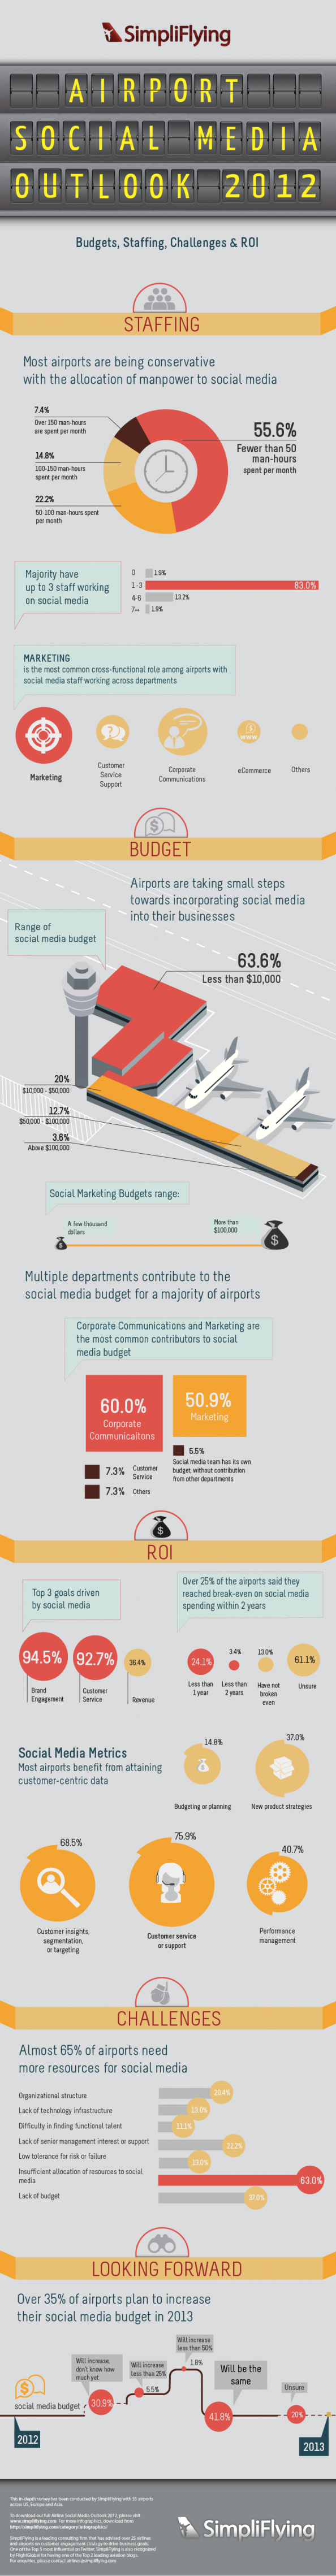 Airport Social Media Outlook 2012 Infographic